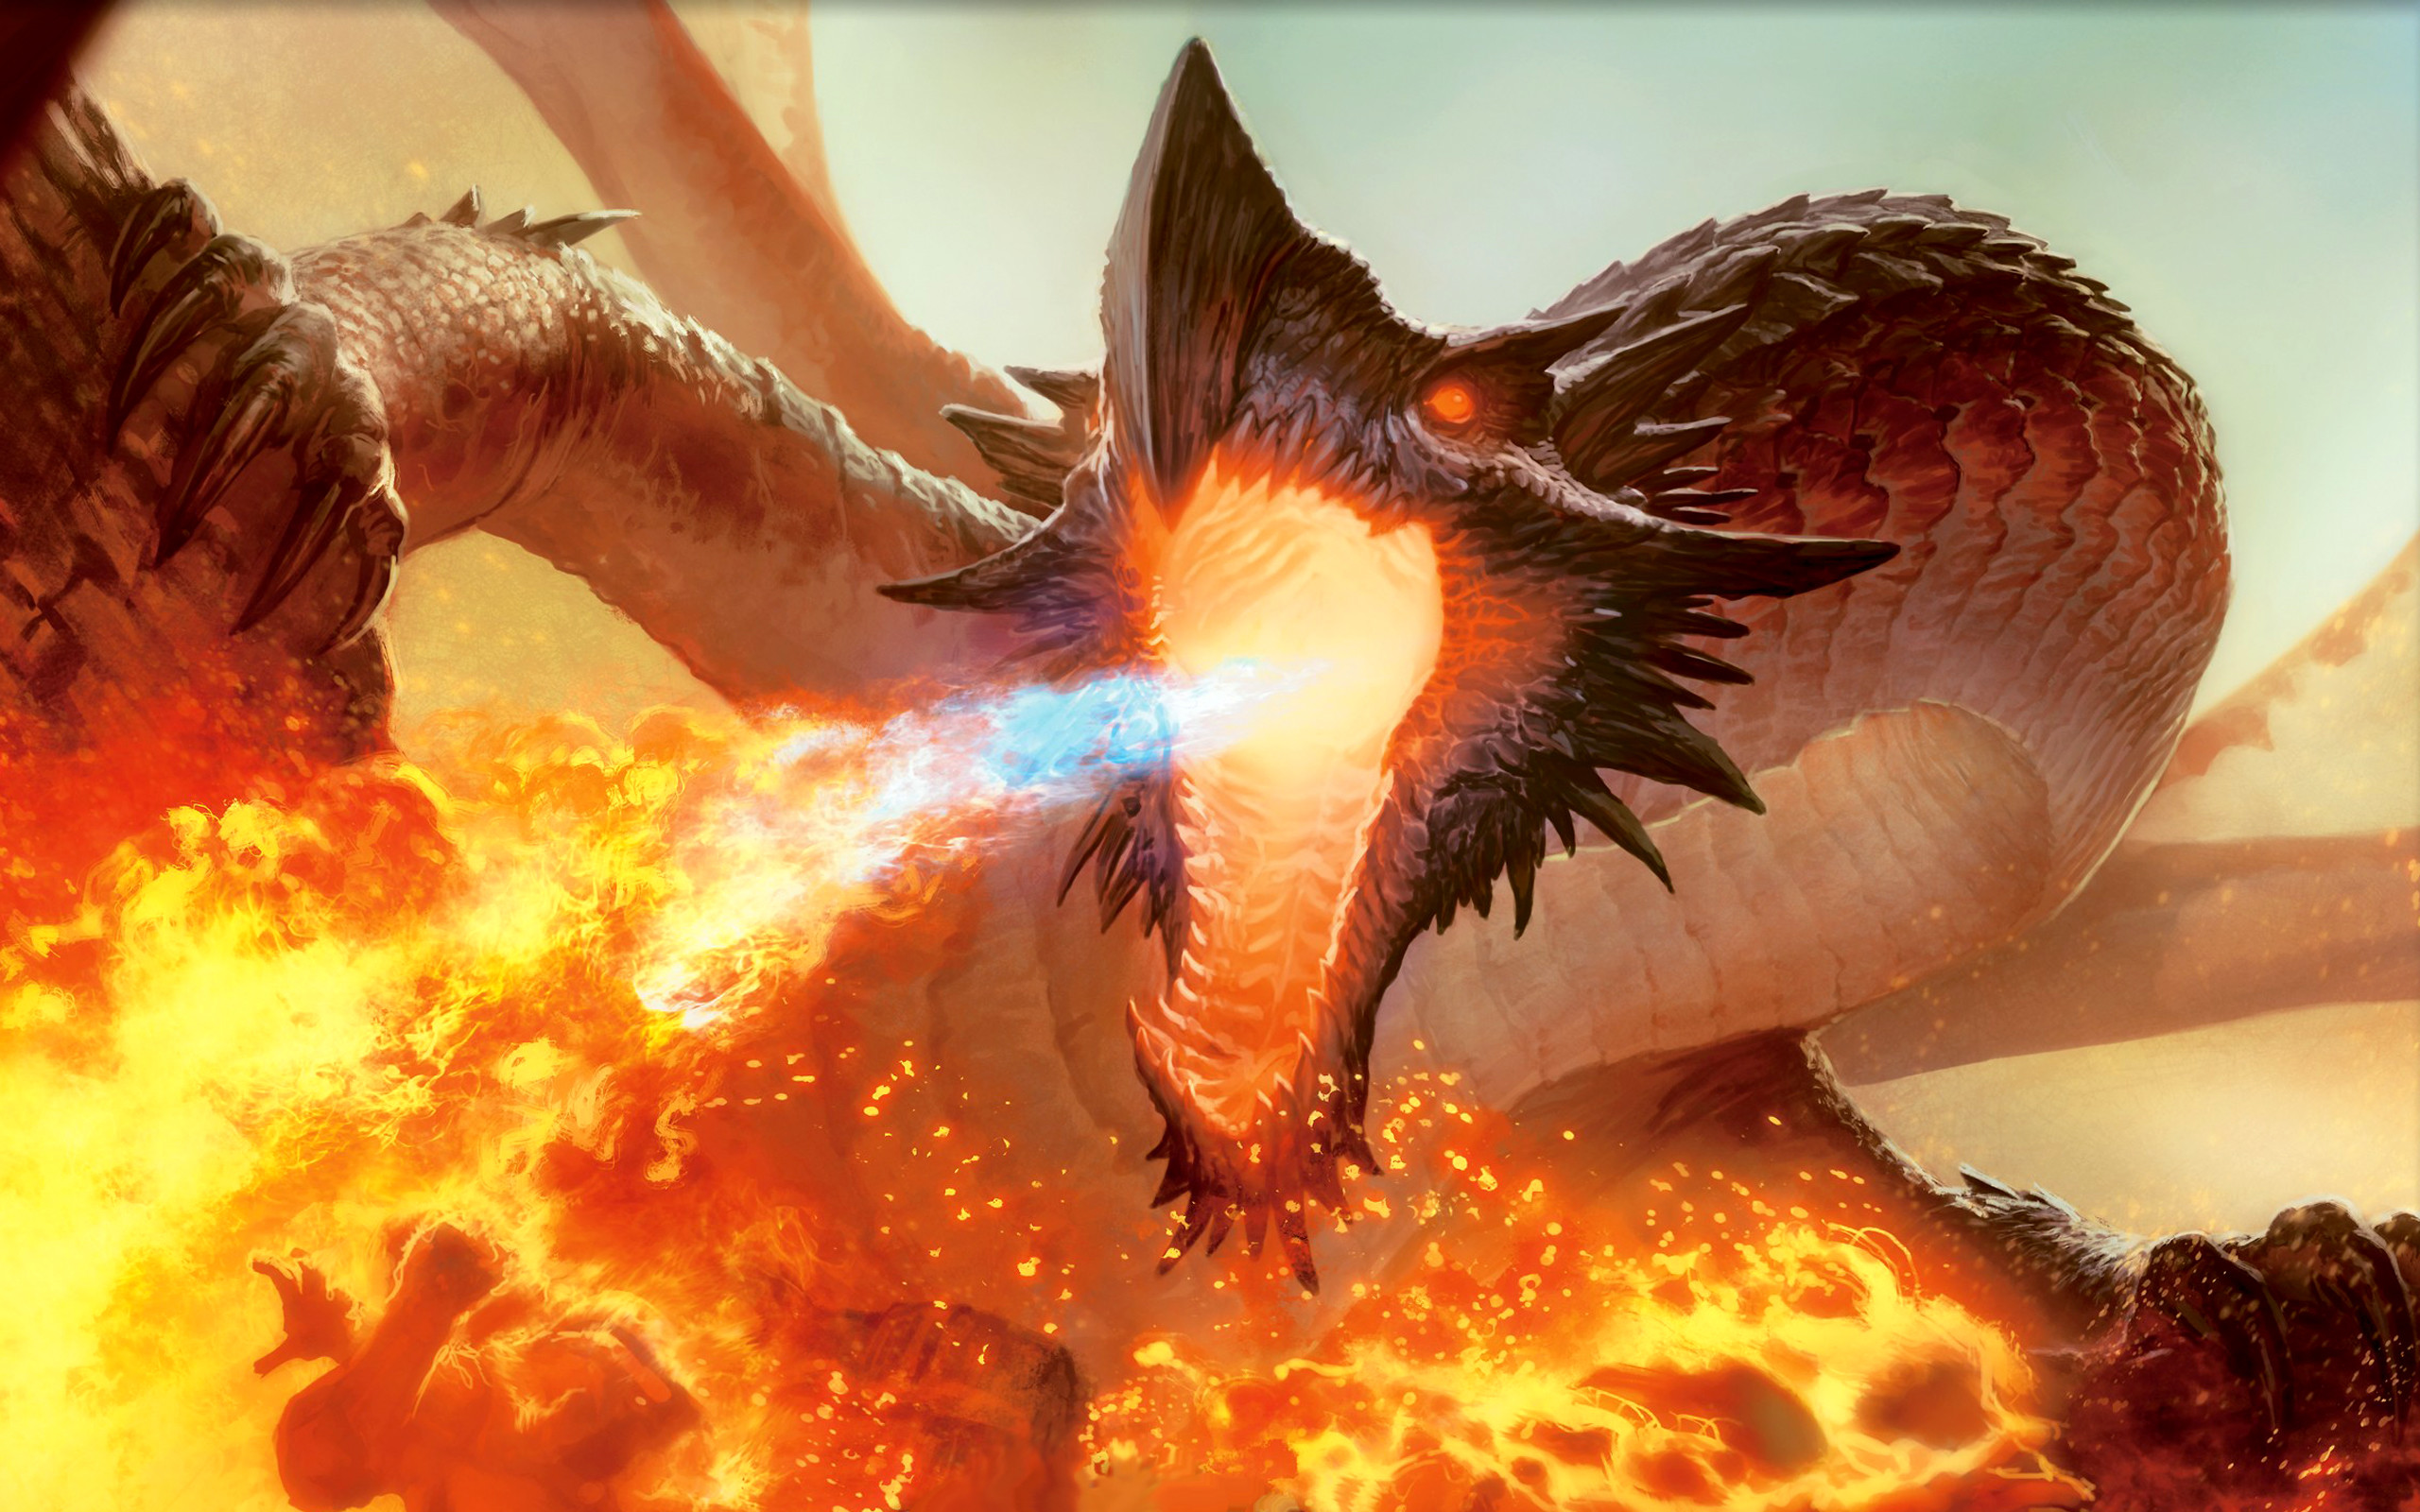 2560x1600 Fantasy Dragon - Dragons Wallpaper (27155012) - Fanpop